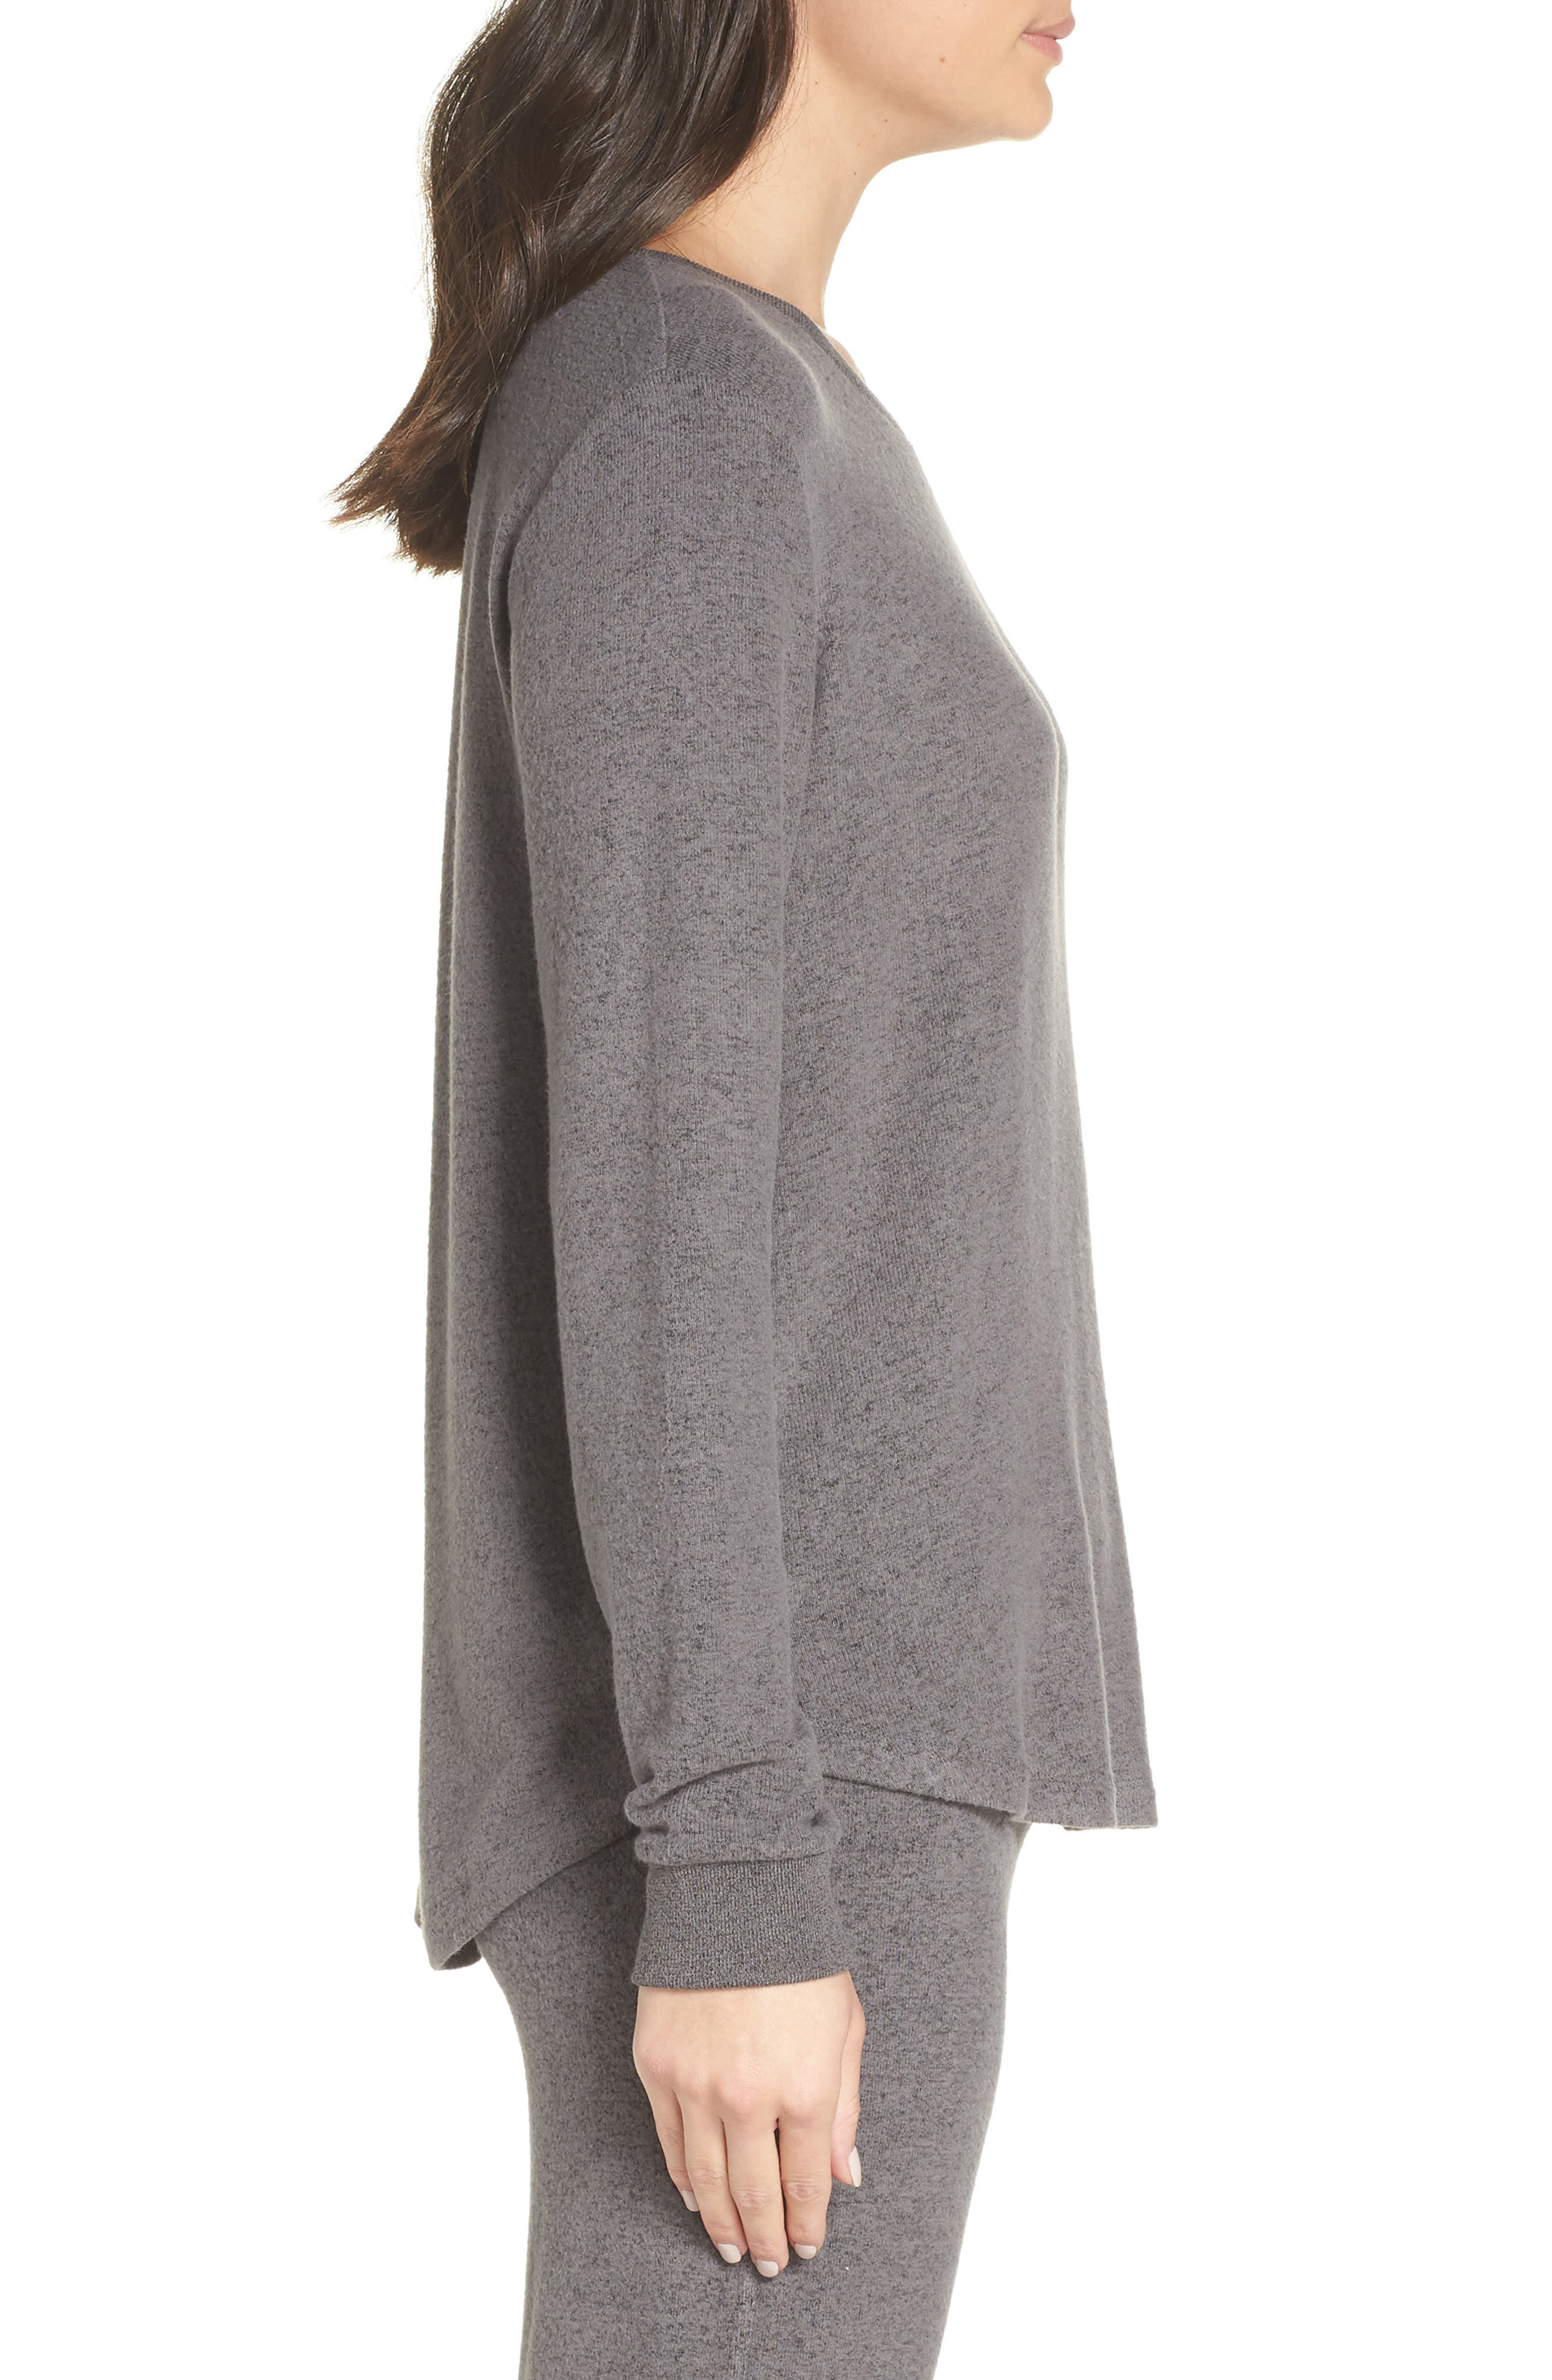 Too Cool Pullover,                             Alternate thumbnail 3, color,                             GREY PAVEMENT MARL